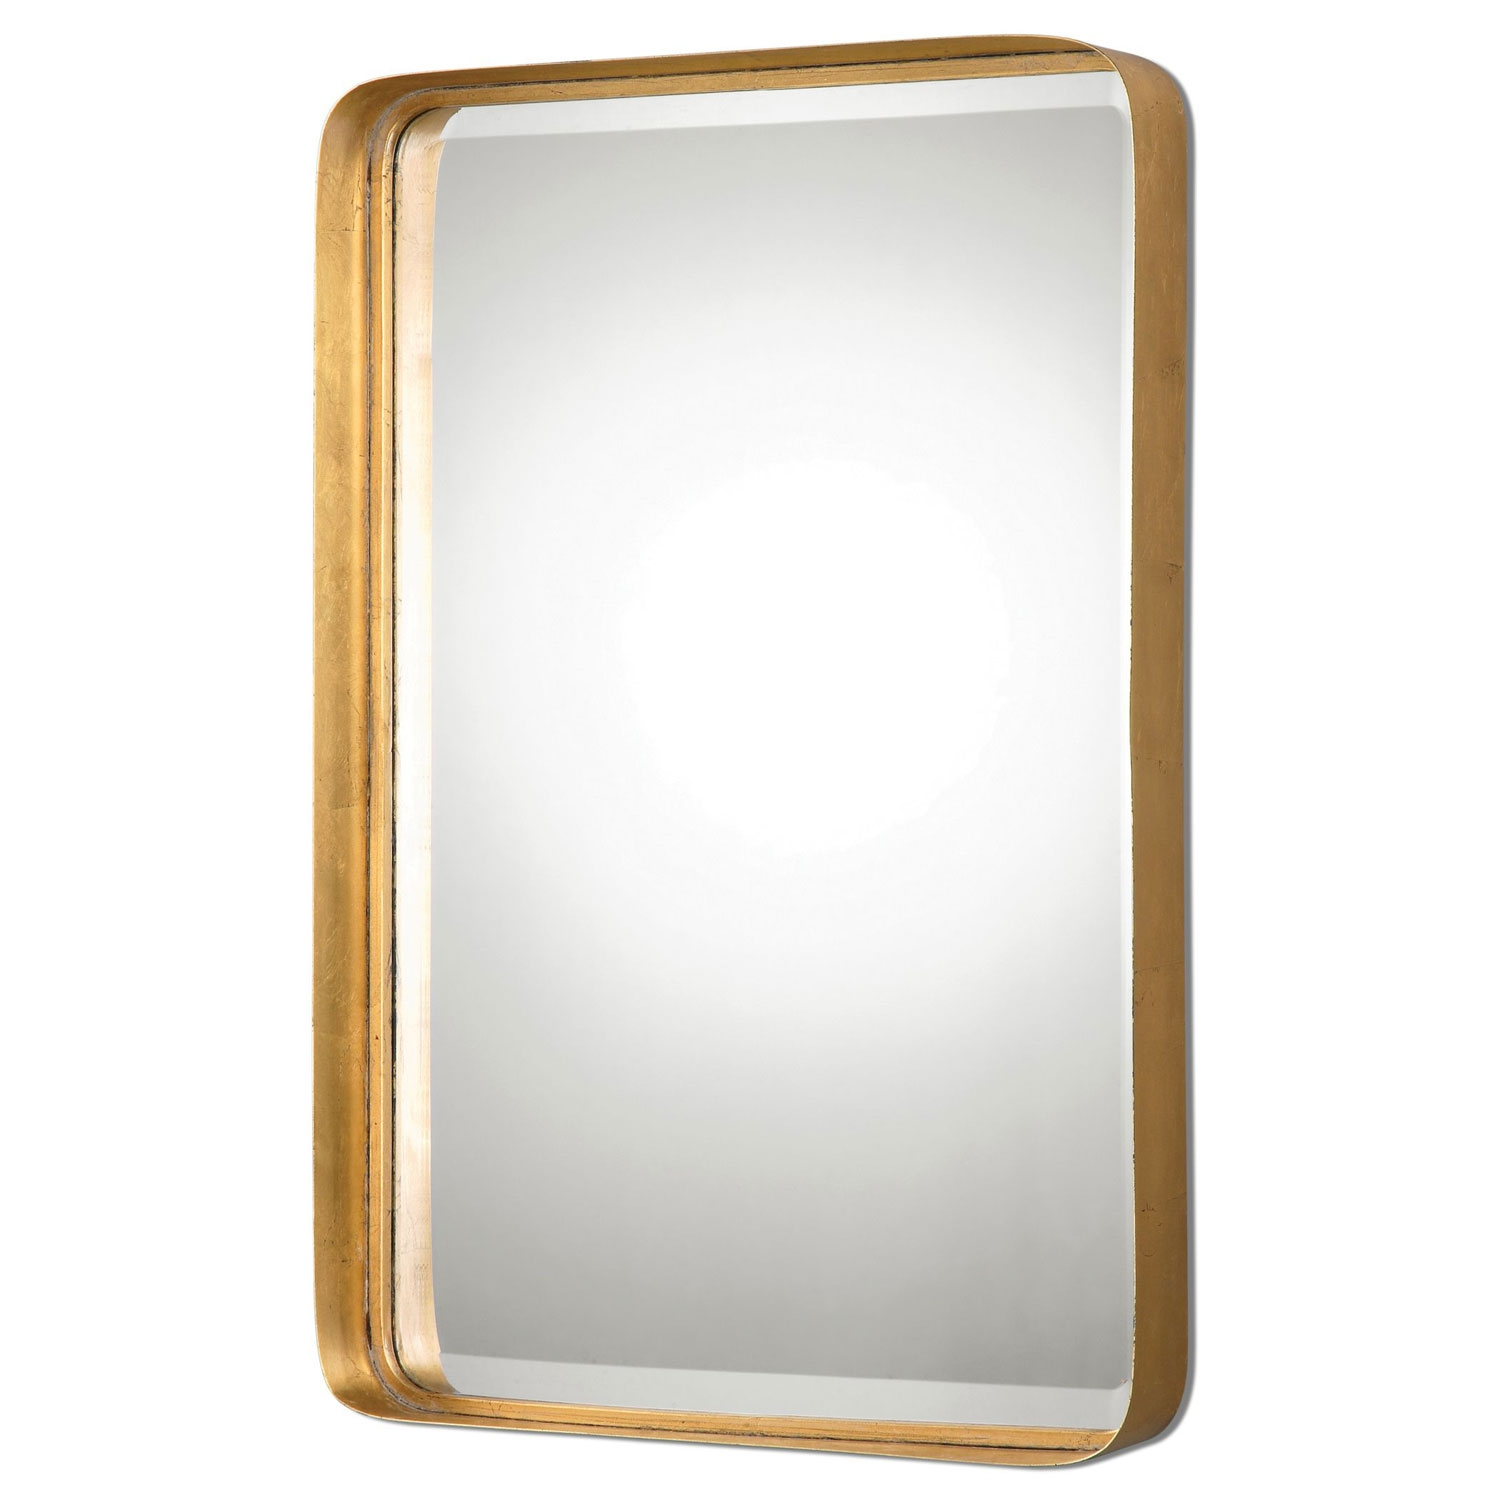 Balkan Modern Gold Wall Mirror Uttermost Rectangle Mirrors Home Decor Within Modern Gold Mirror (View 2 of 15)